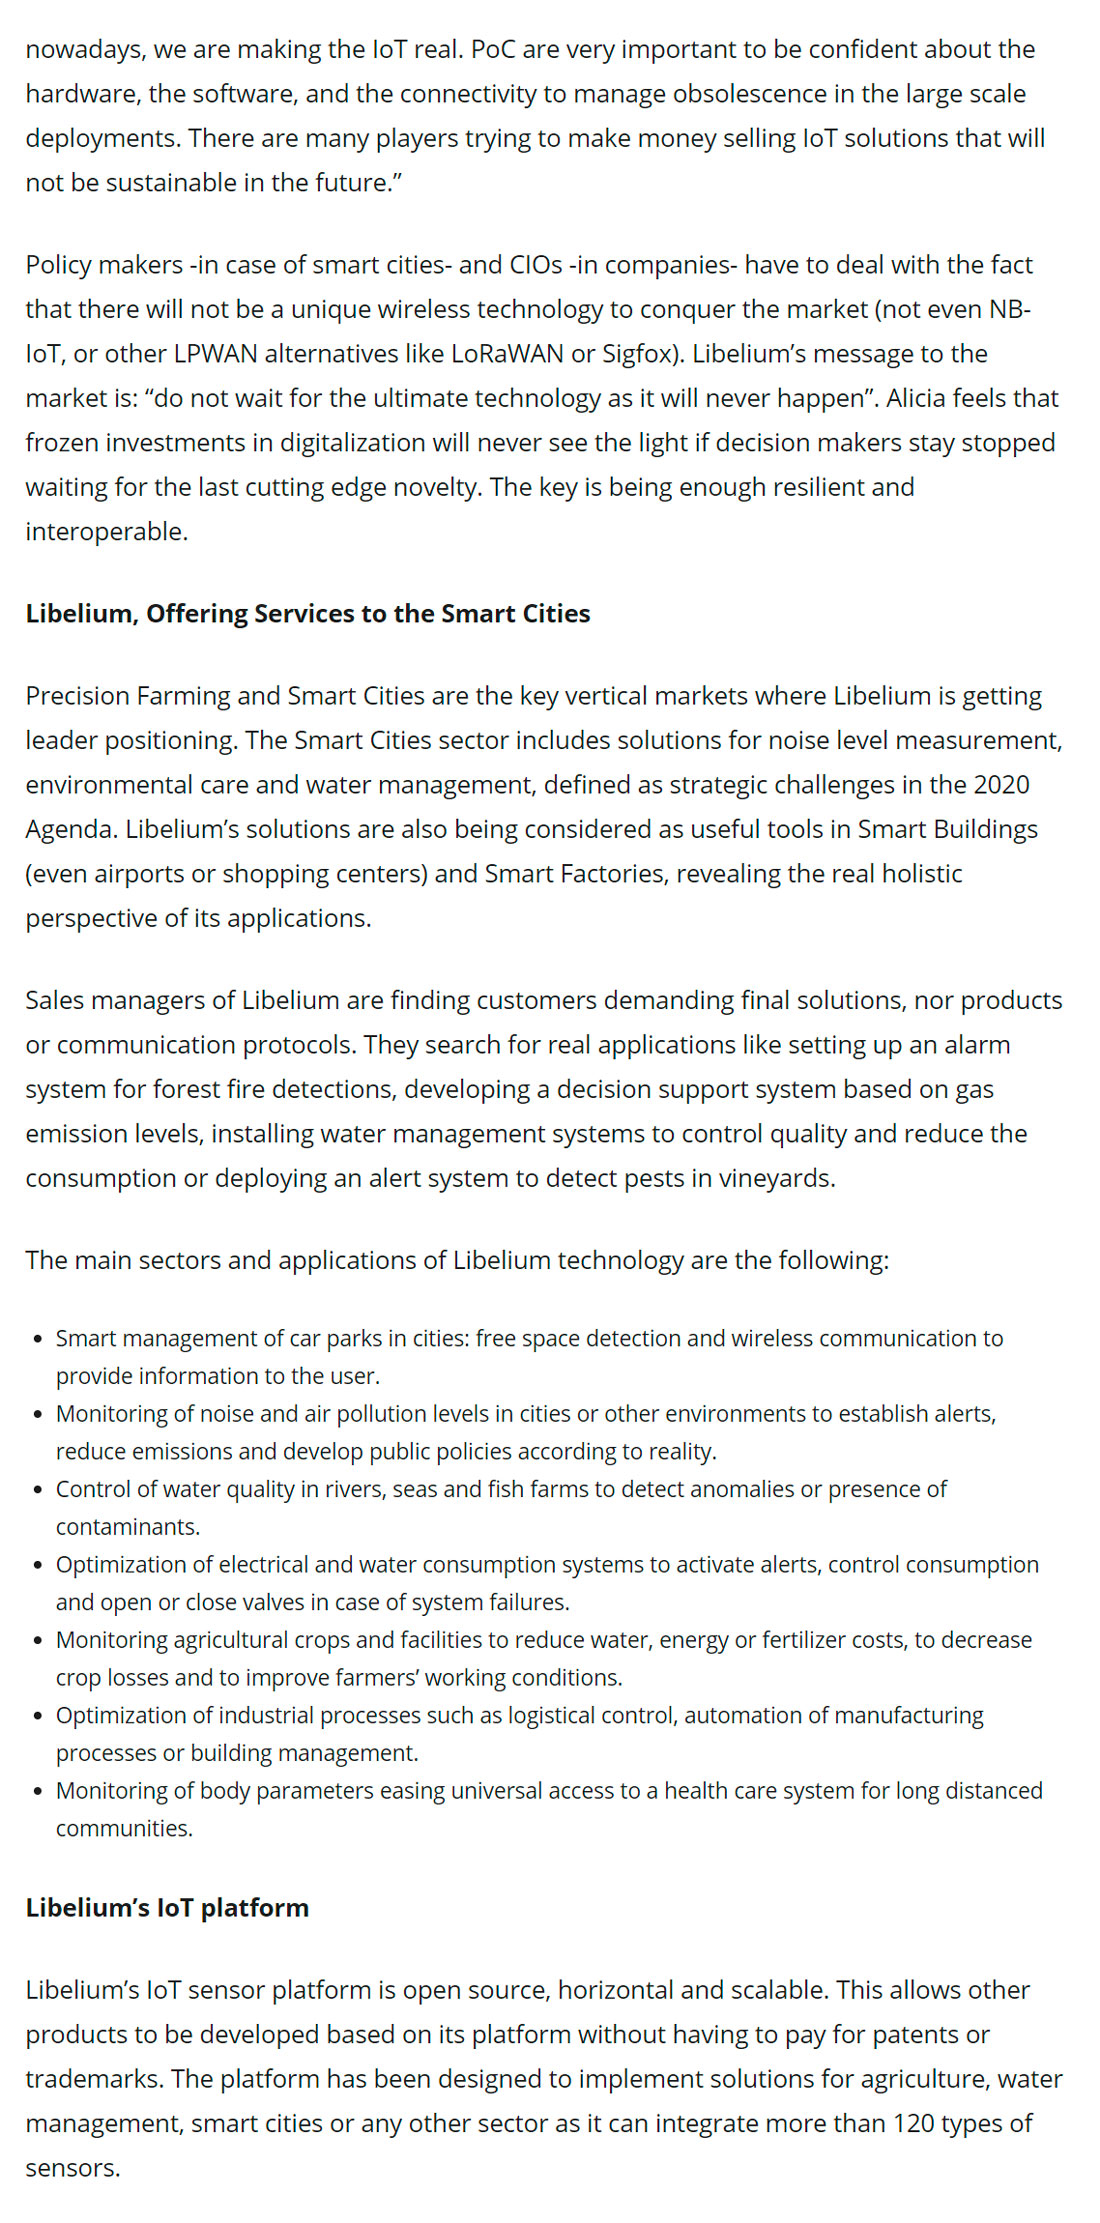 Libelium: A Global Leader in Precision Farming and Smart Cities